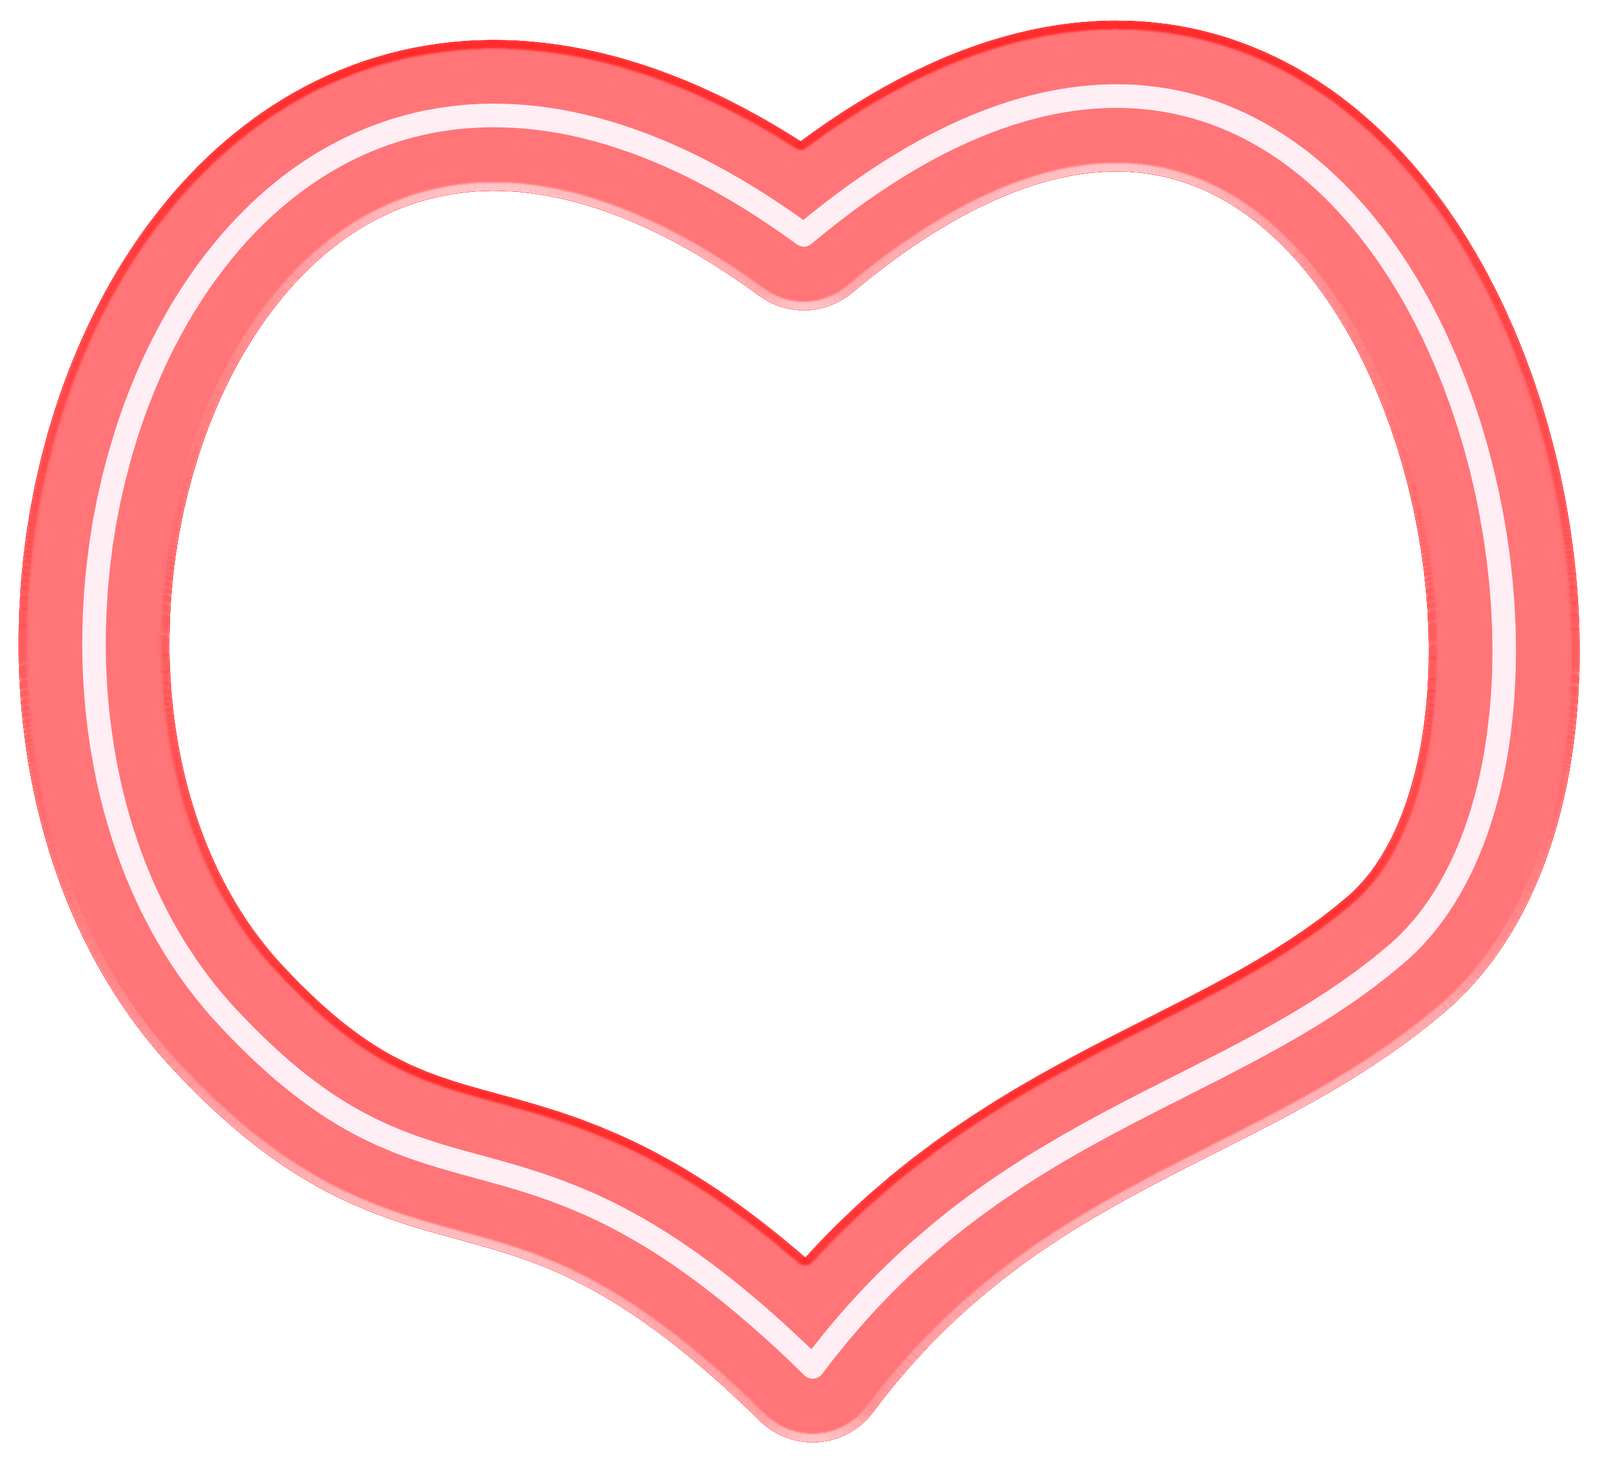 Golf clipart heart. Frame transparent png pictures